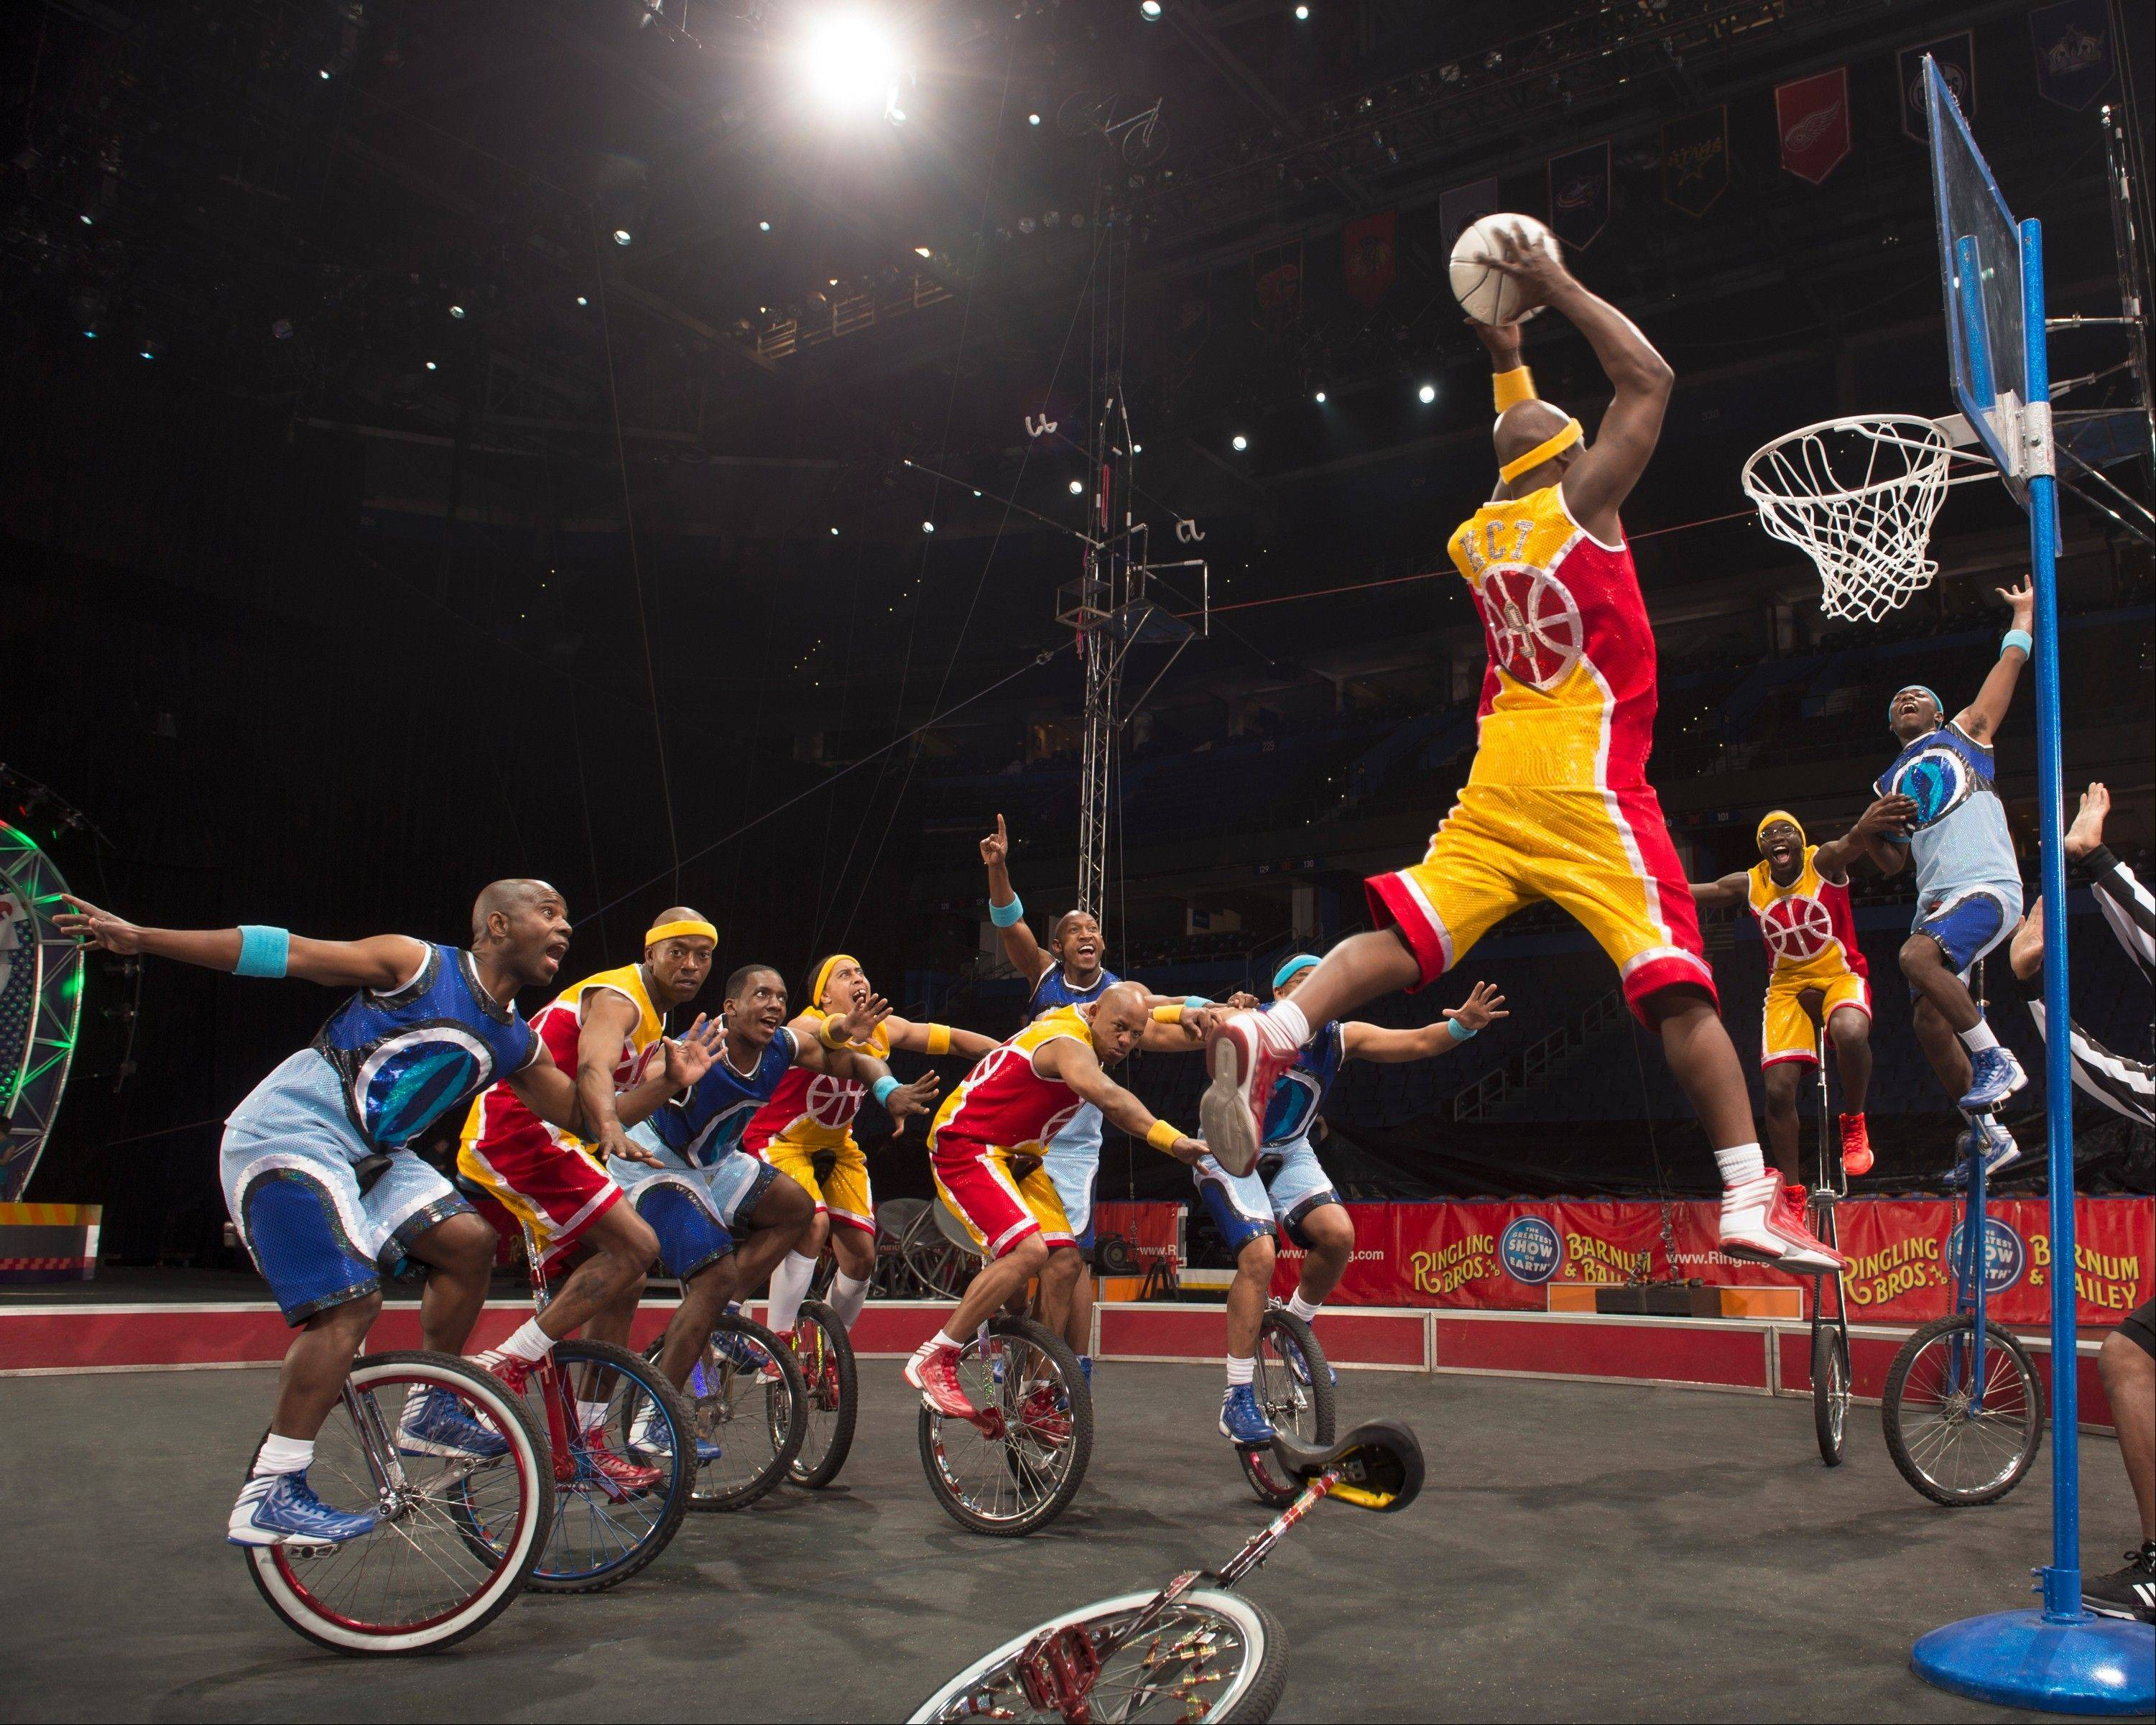 "The King Charles Troupe featuring unicycling basketball players returns to perform with the Ringling Bros. and Barnum & Bailey Circus in the show ""Built to Amaze!"""